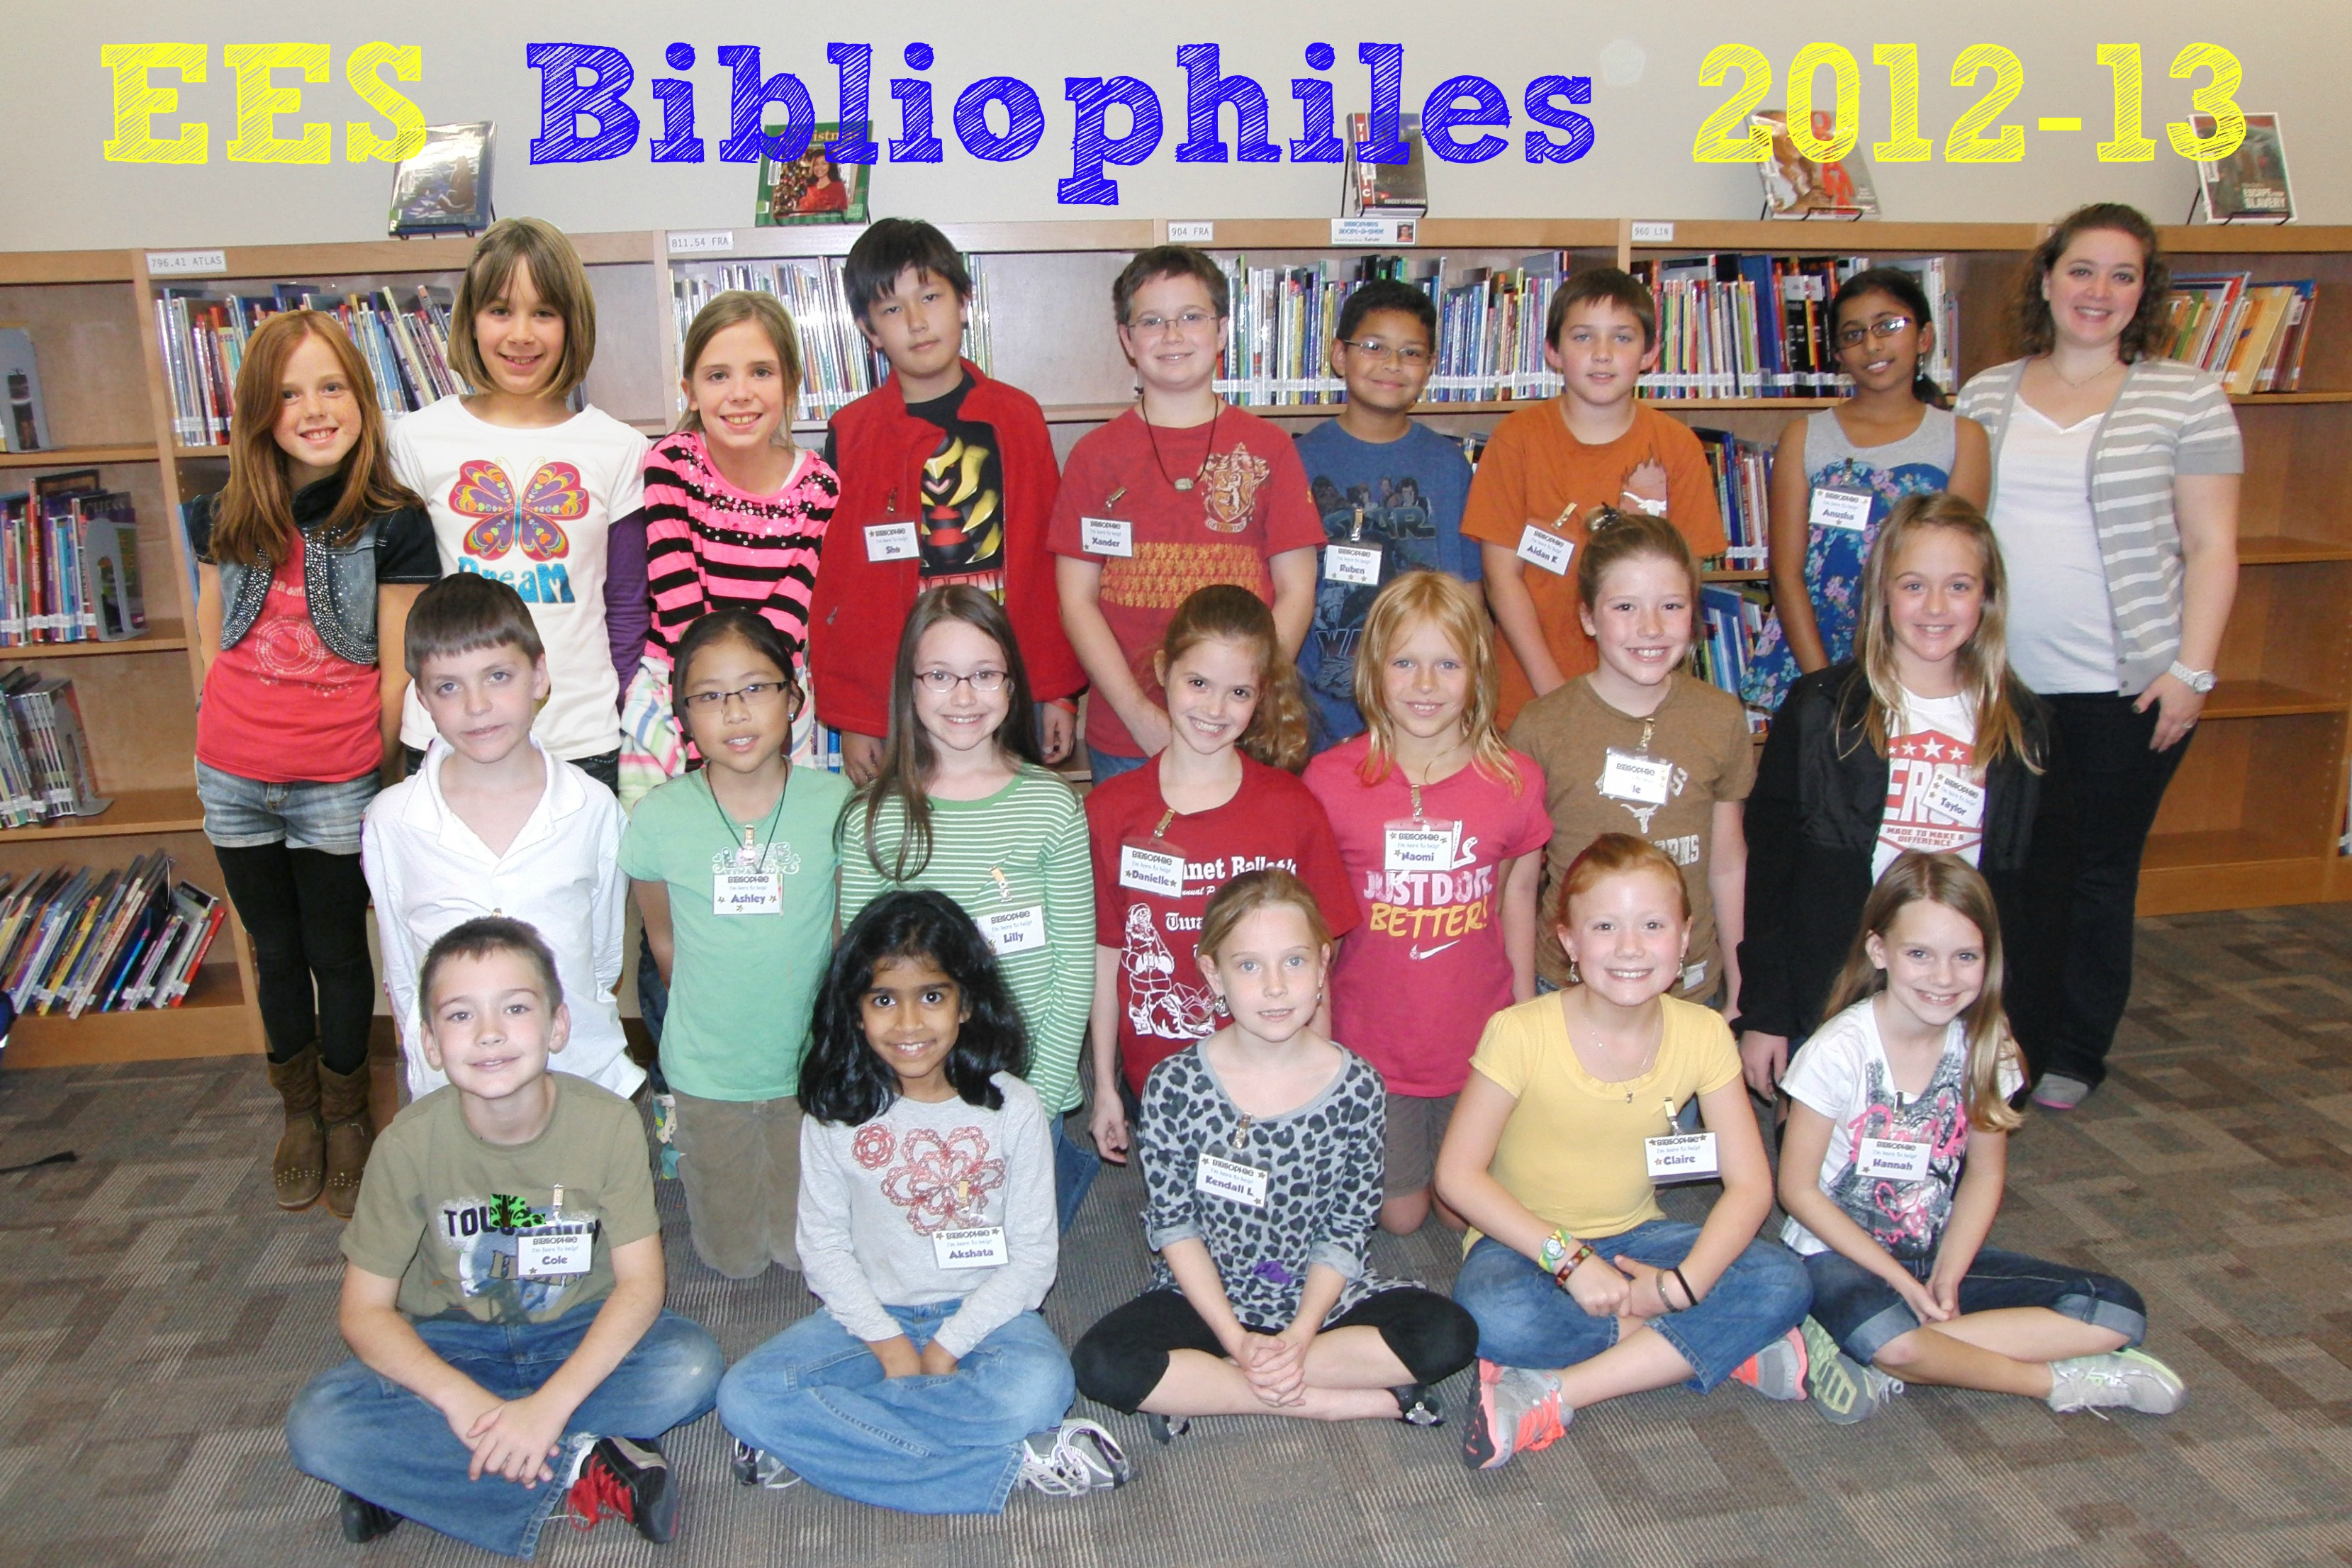 2012-13 Bibliophile Group Photo-with-text